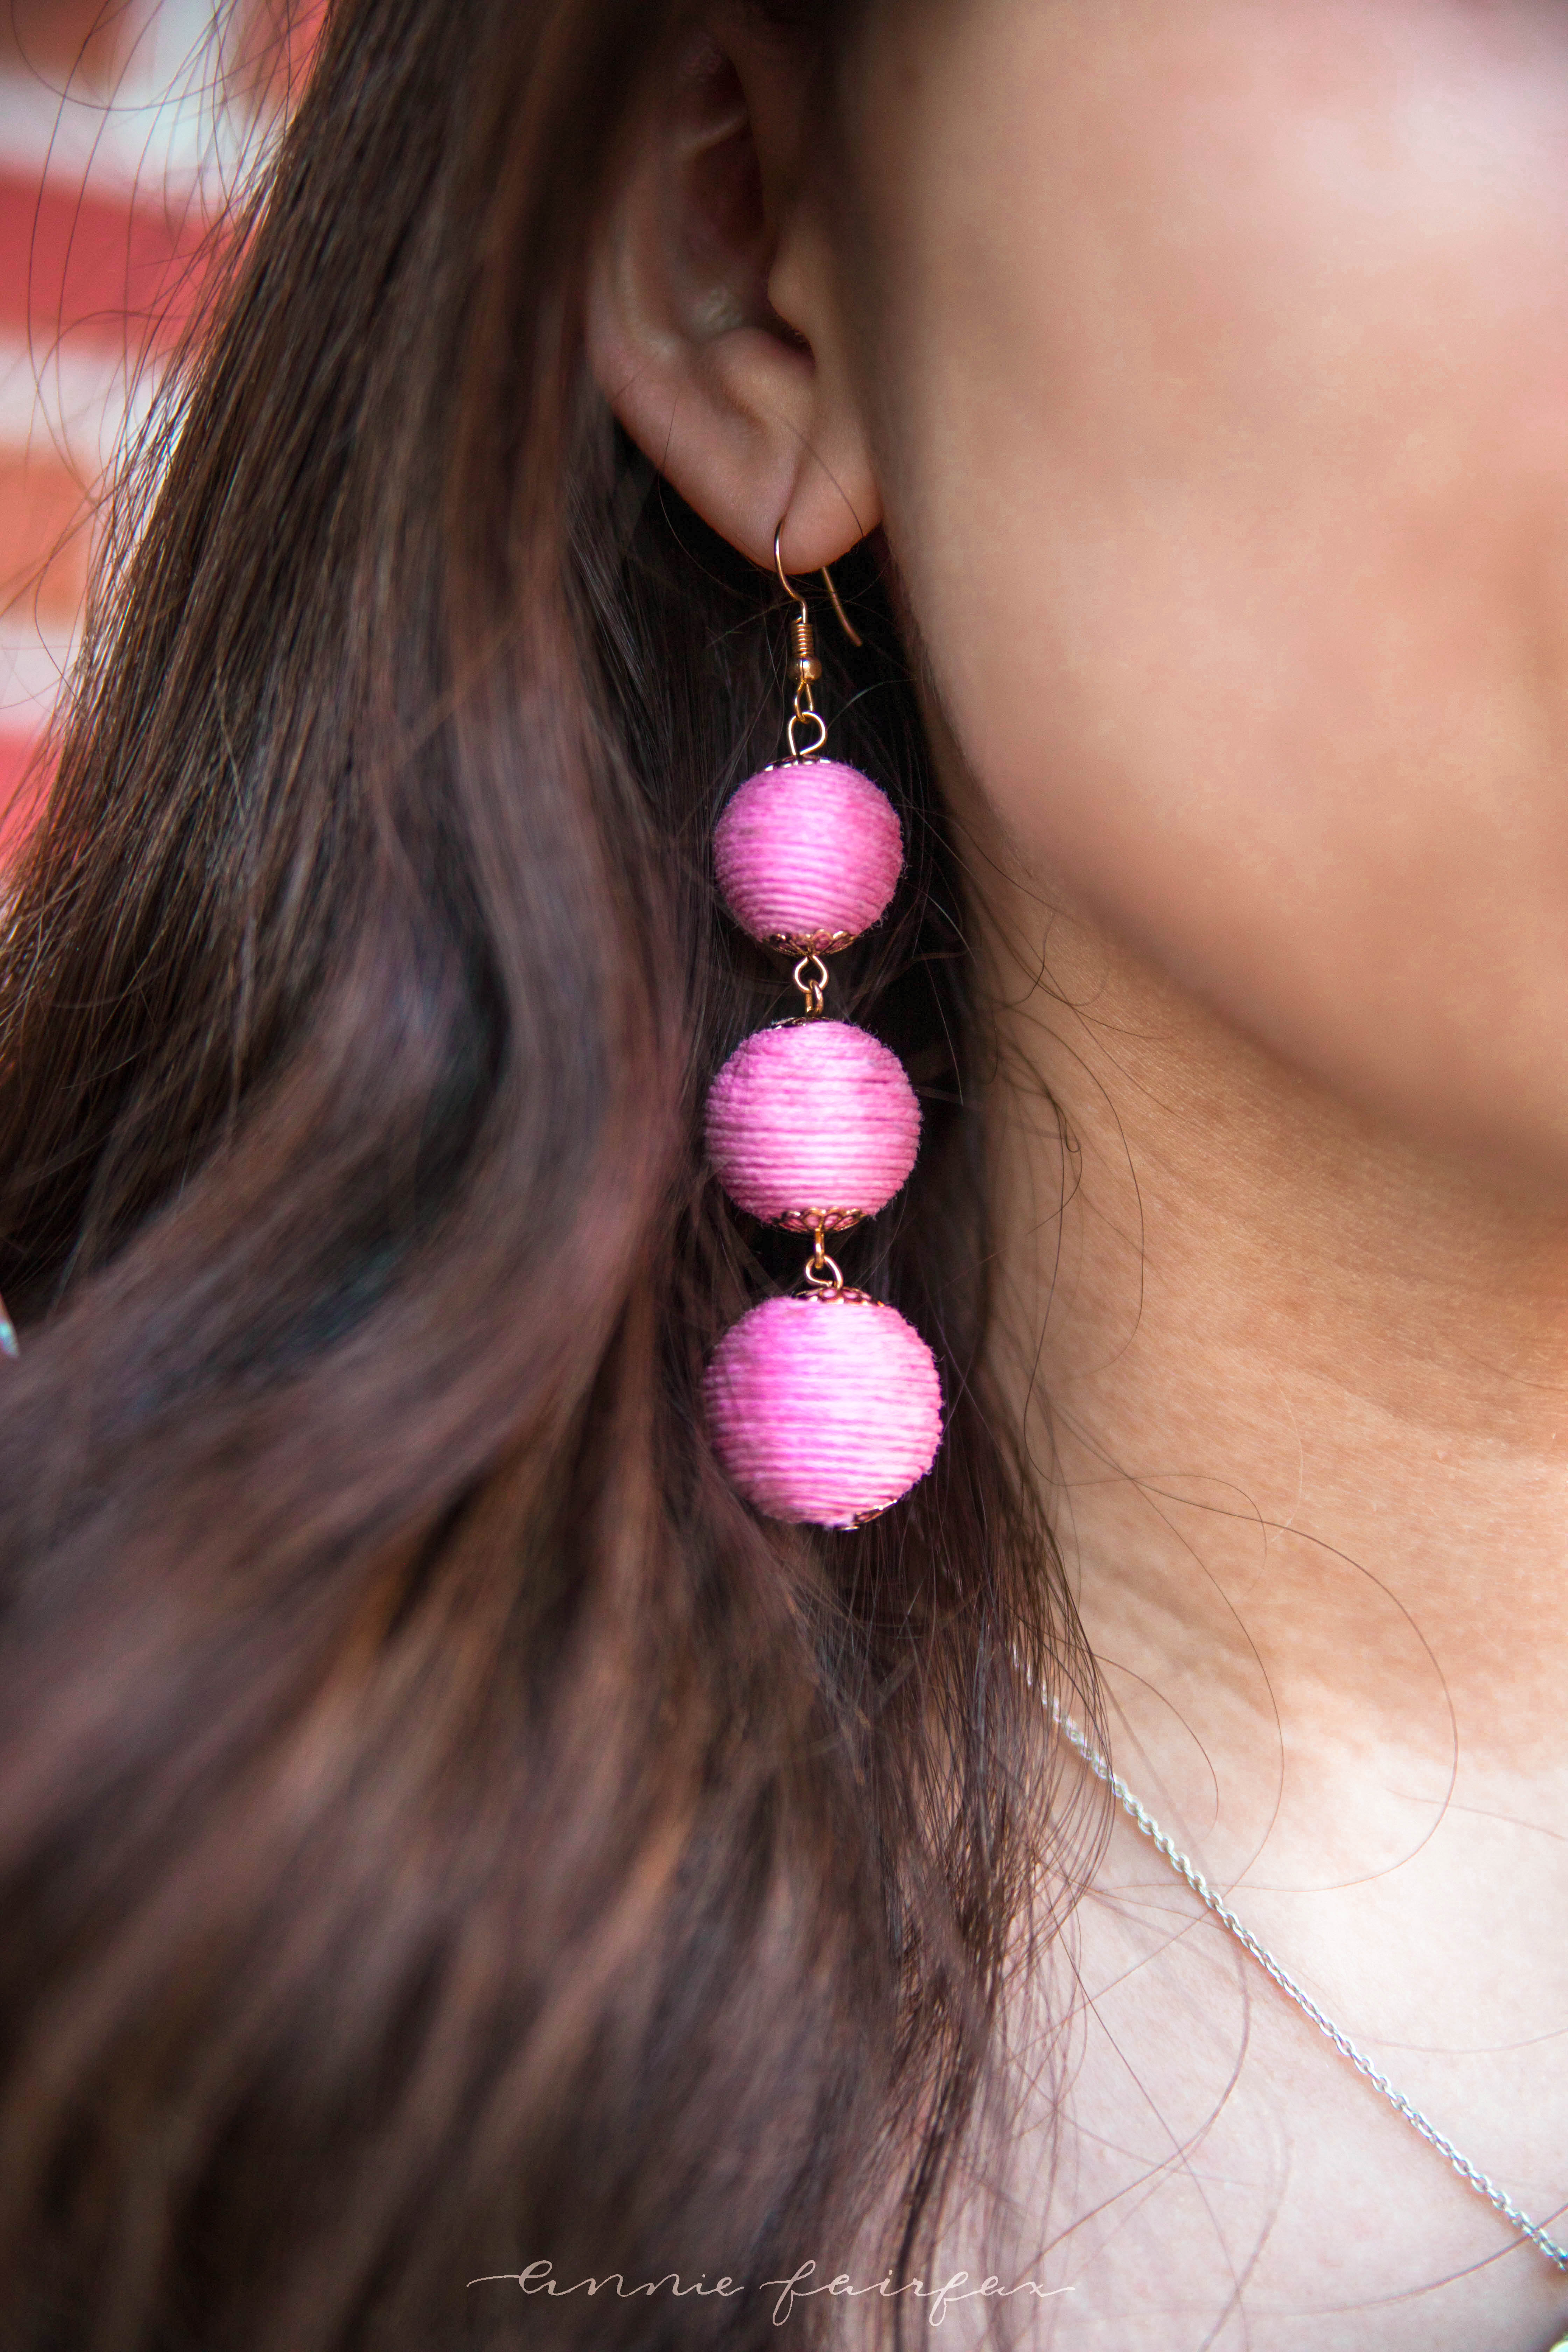 girl with brown hair detail shot light bright pink ball drop earrings with thread preppy accessories classic quirky jewelry